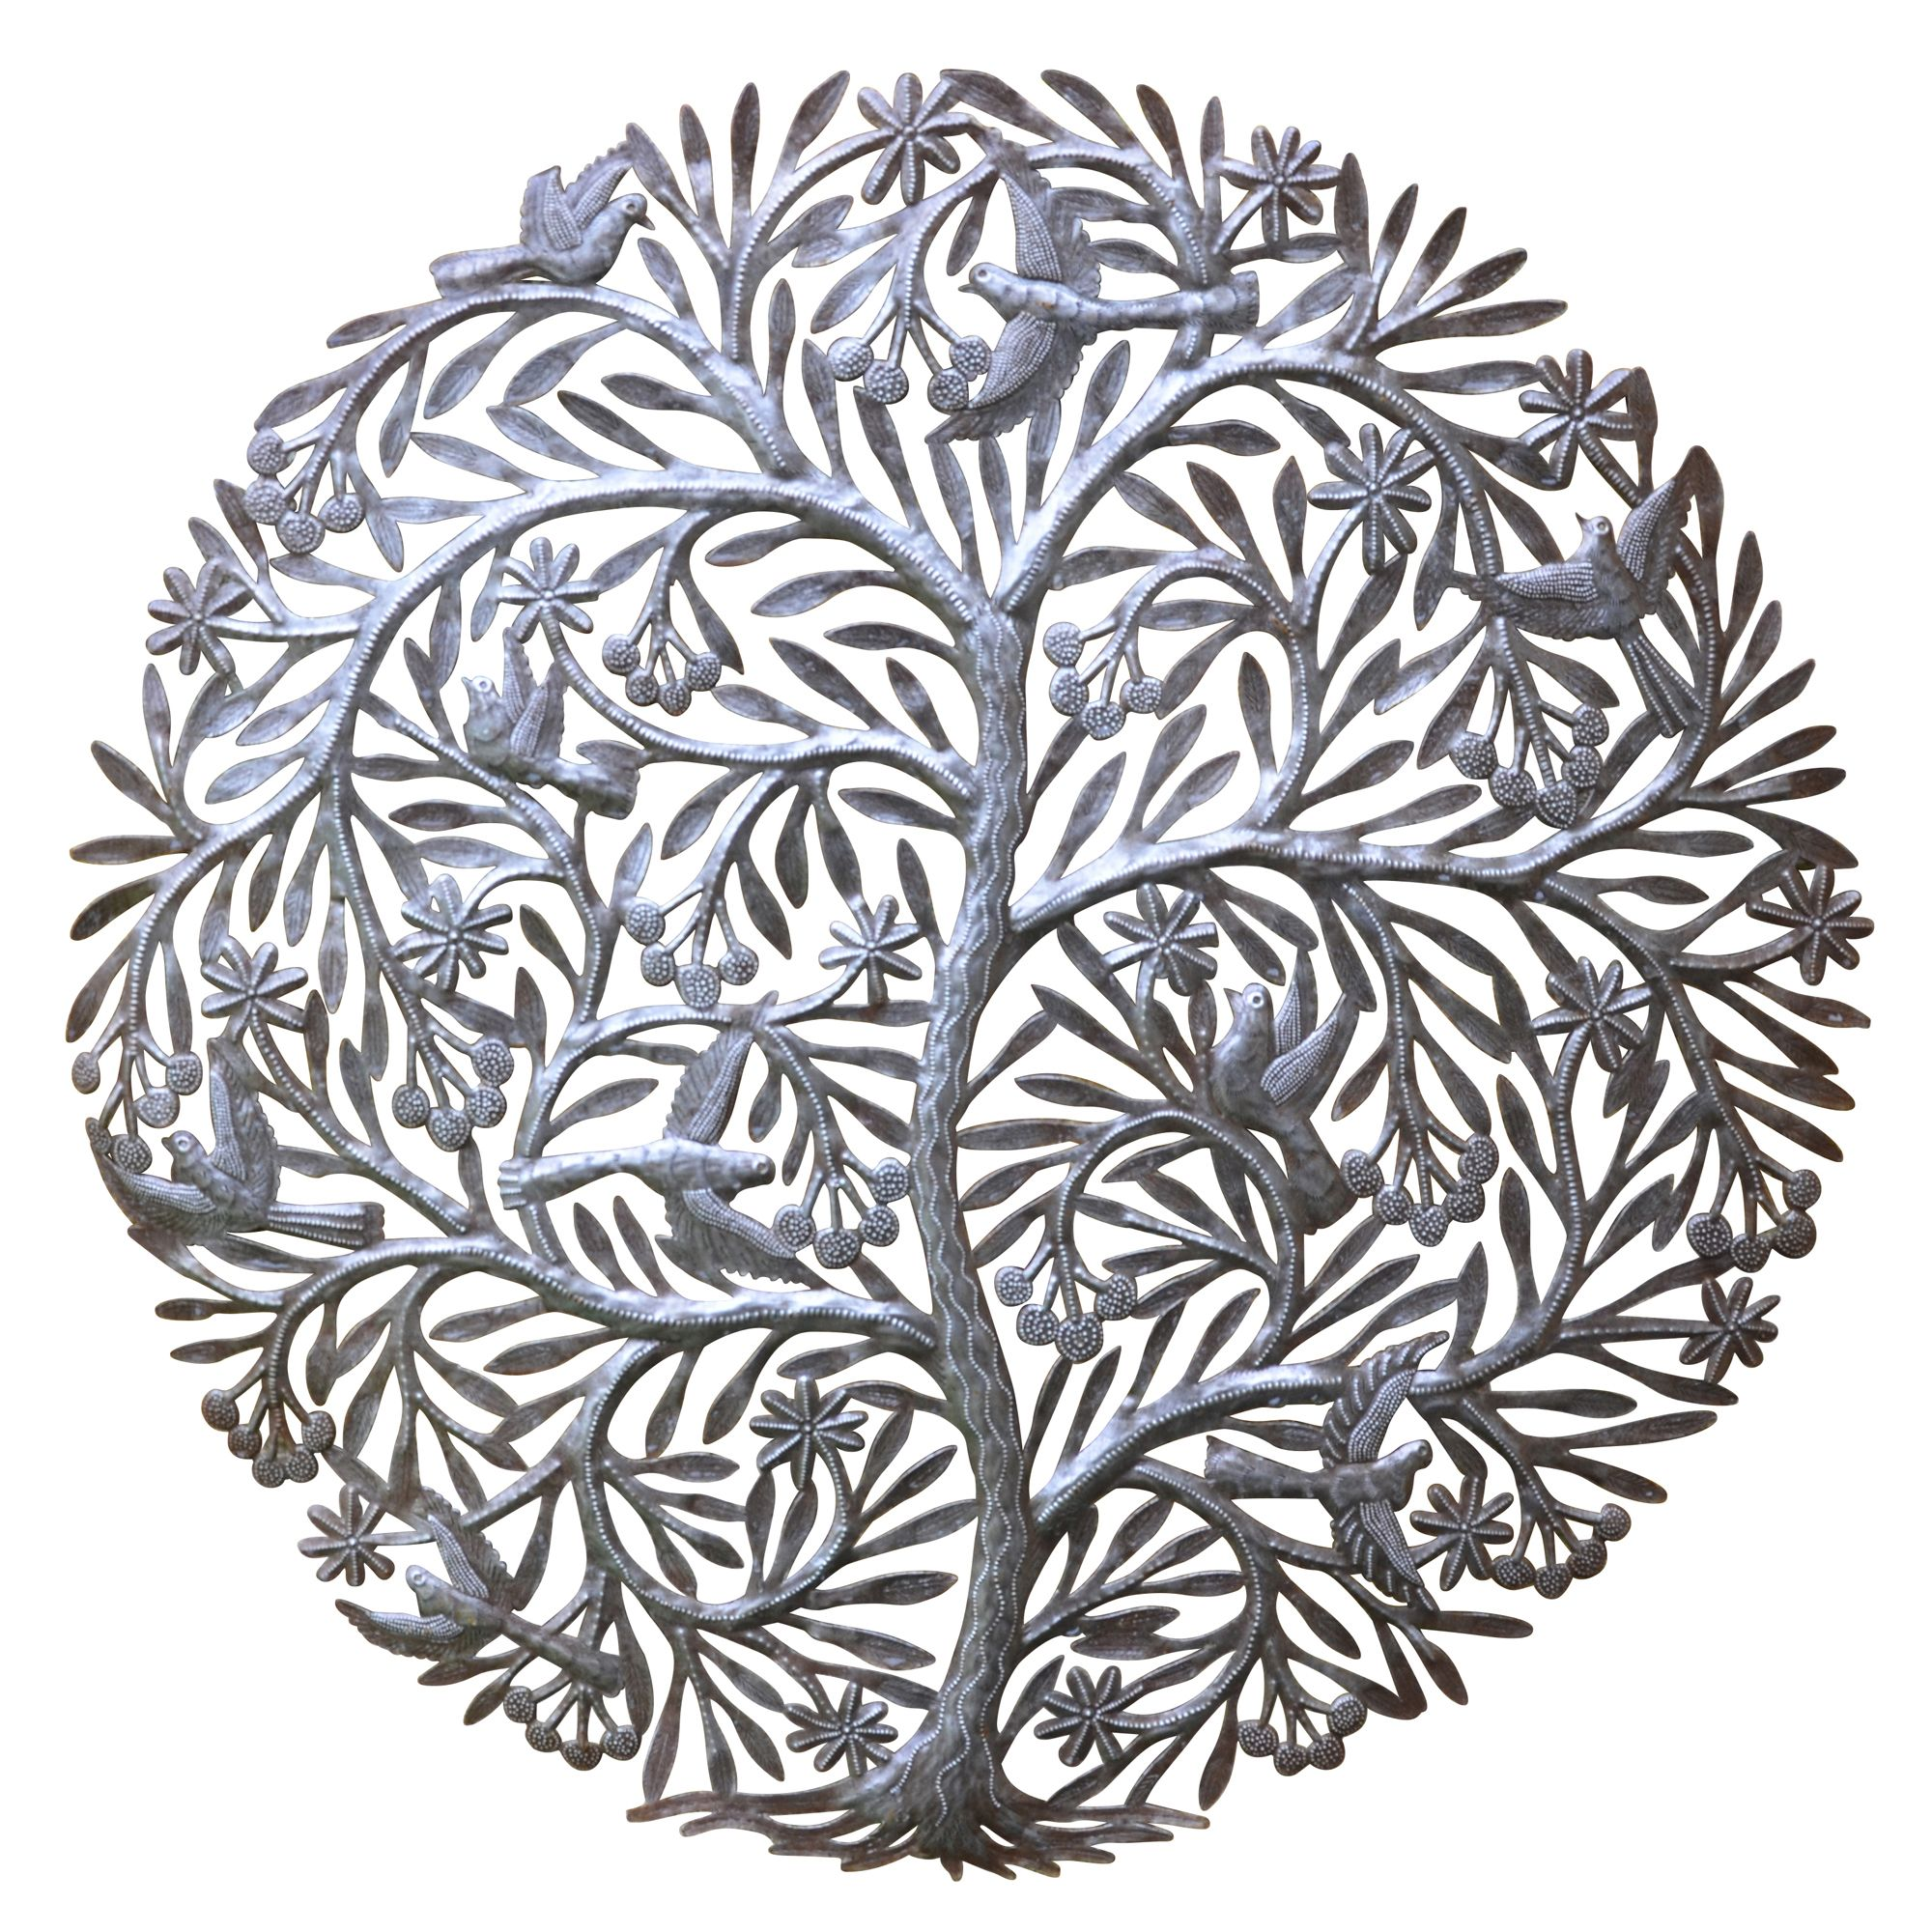 The Tree of Life Decorative Metal Wall Panel ...